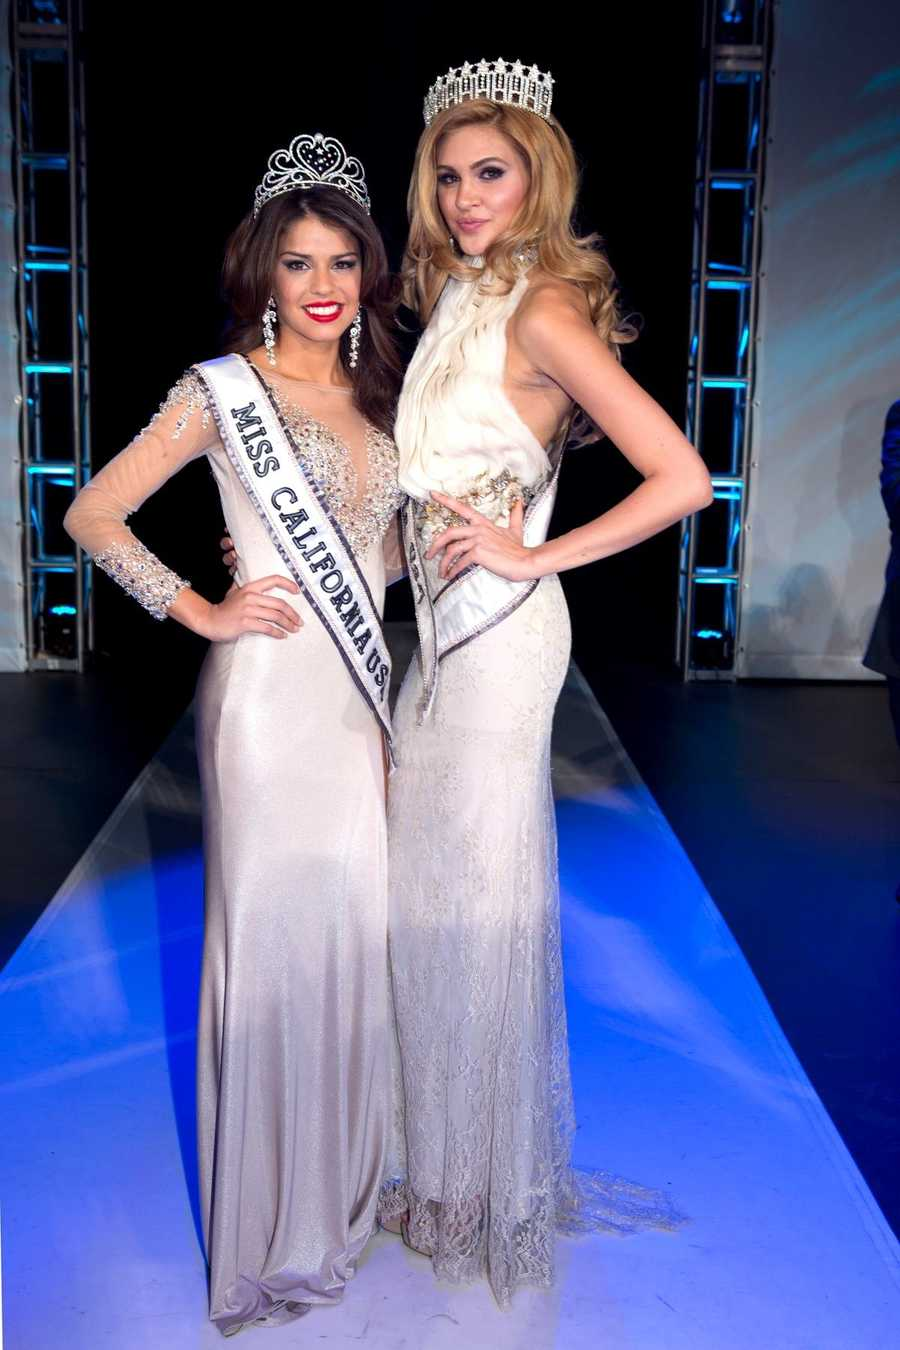 Mabelynn Capeluj poses with 2012 Miss California USANatalie Pack.